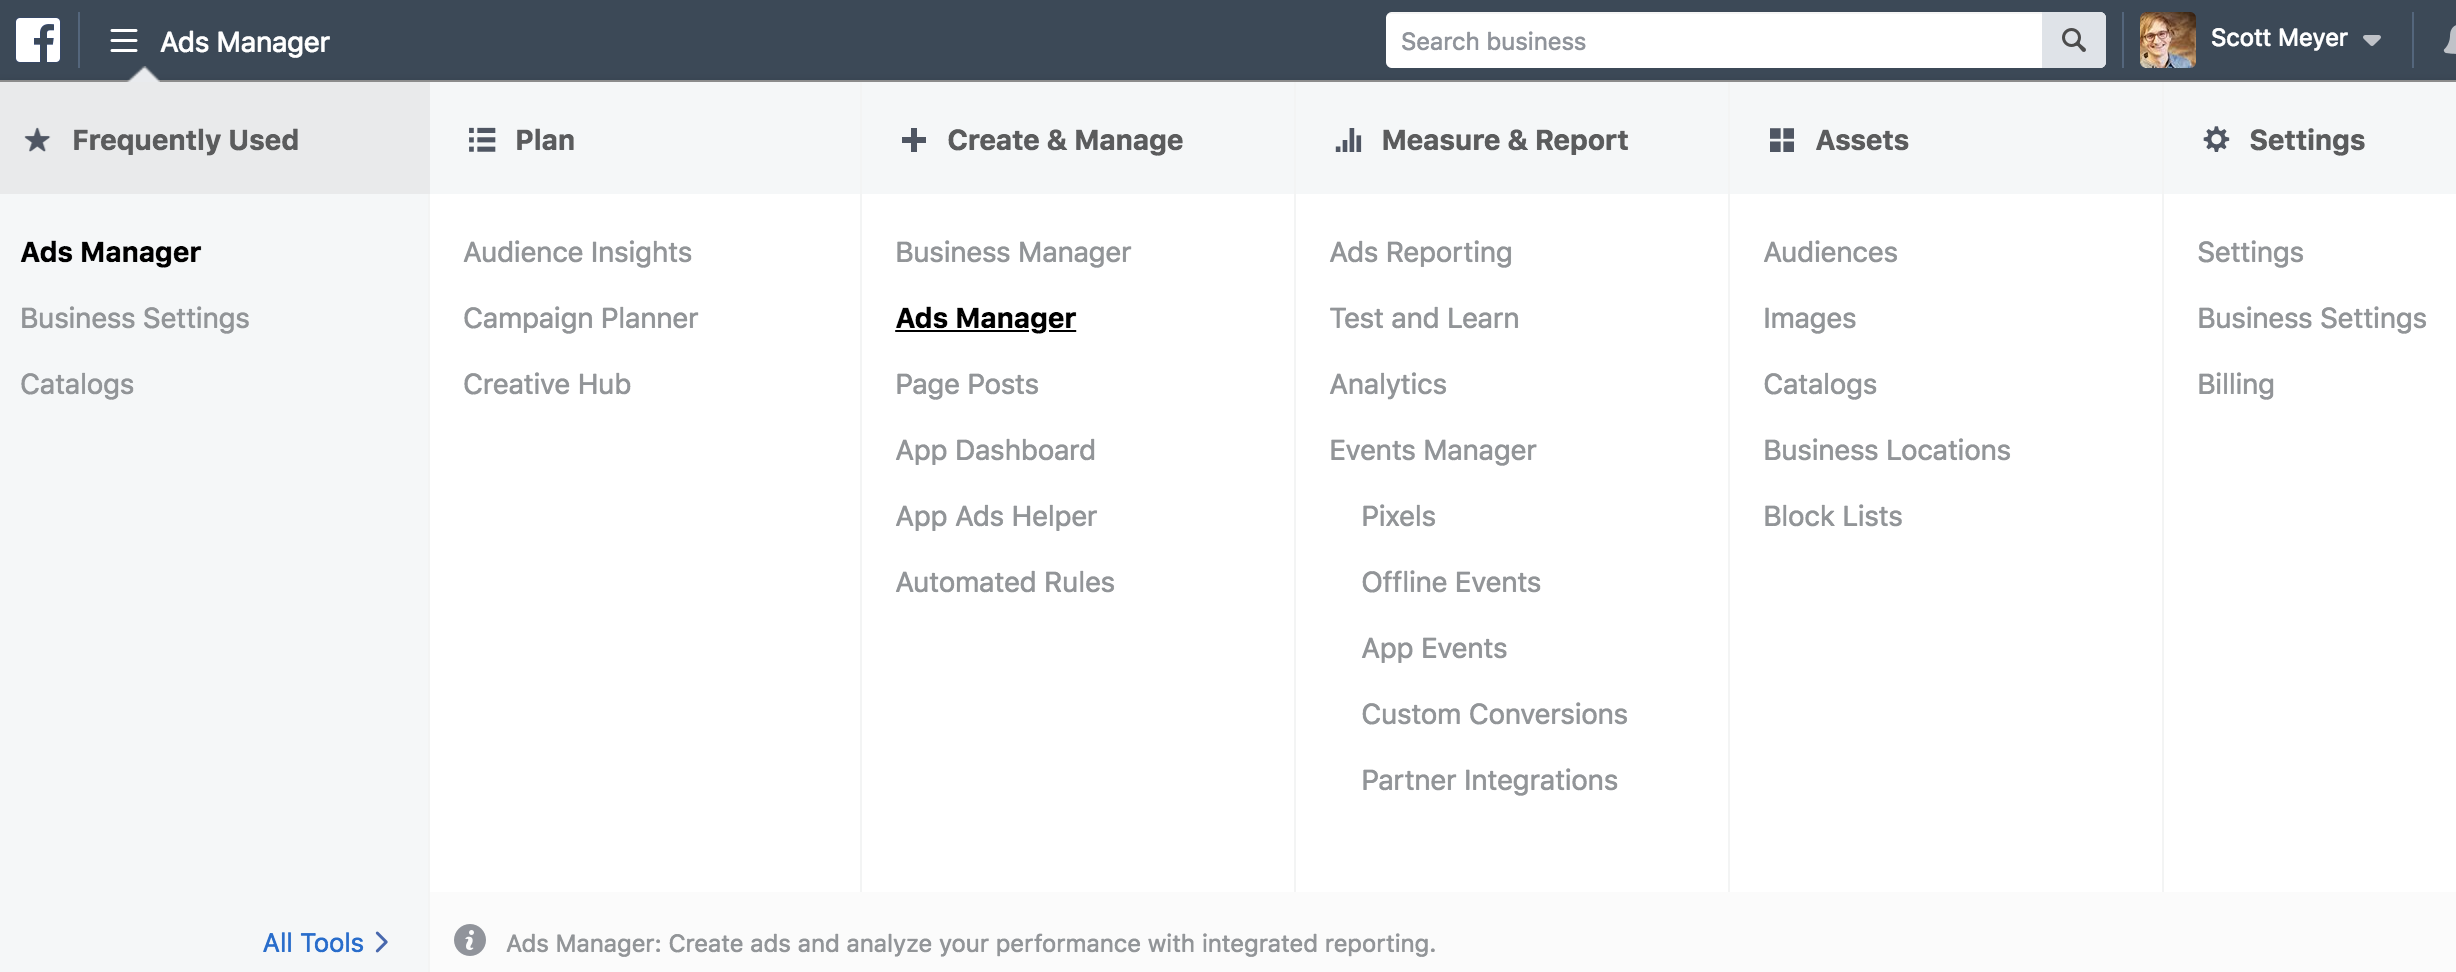 Ads Manager for Facebook